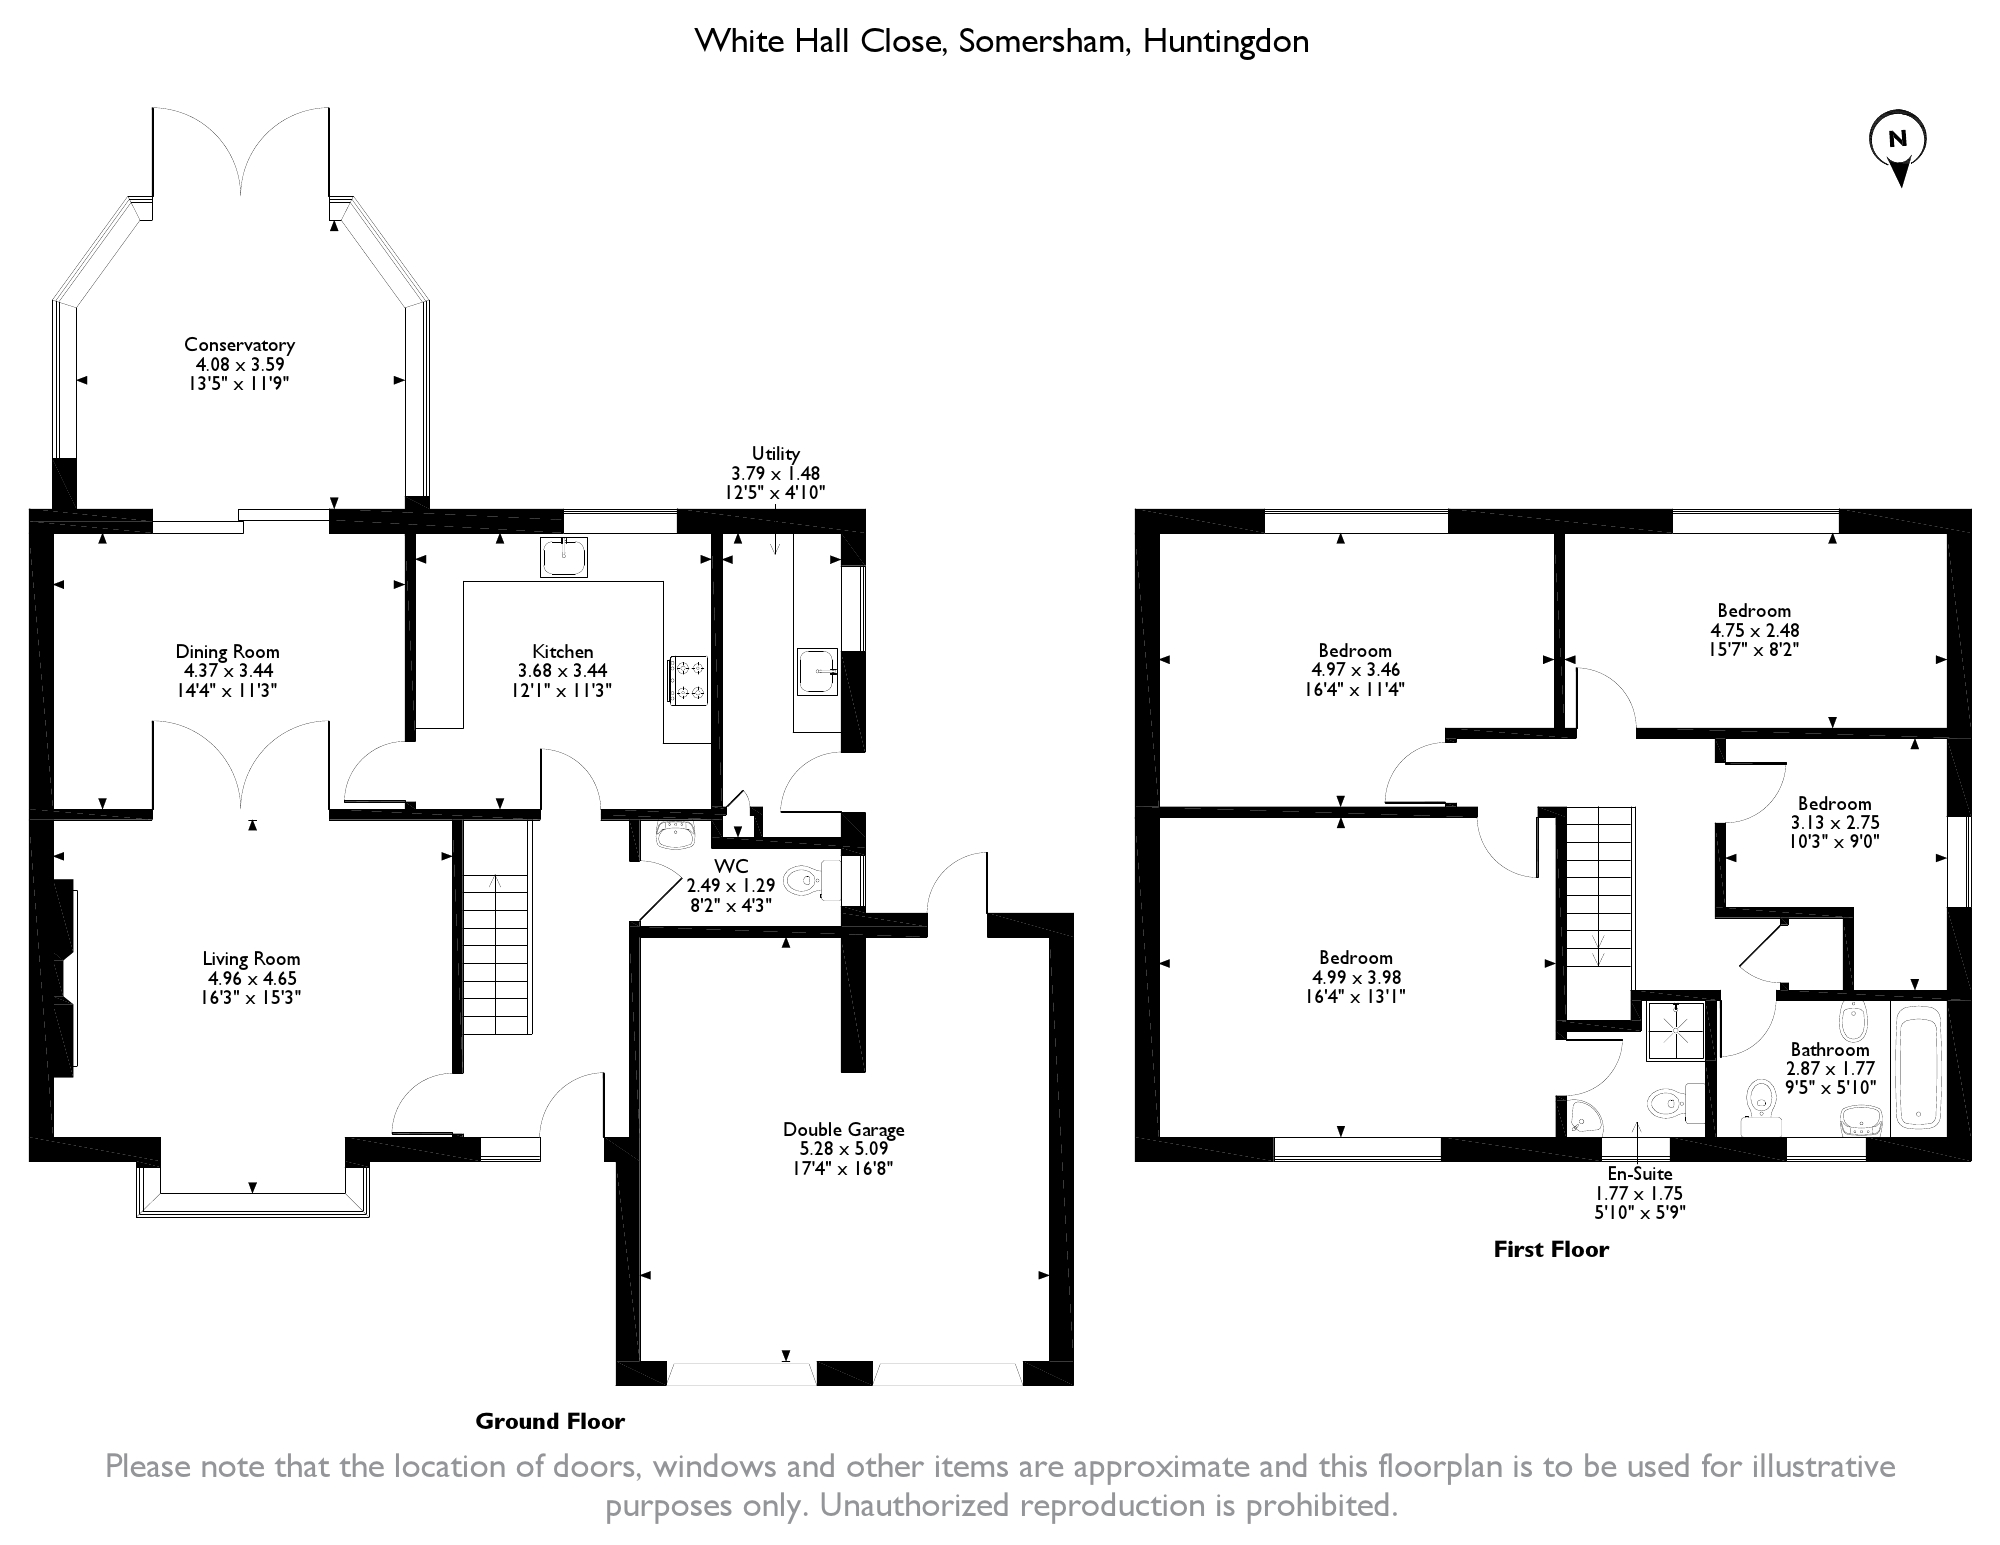 White Hall Close, Somersham, Huntingdon, PE28 floor plan